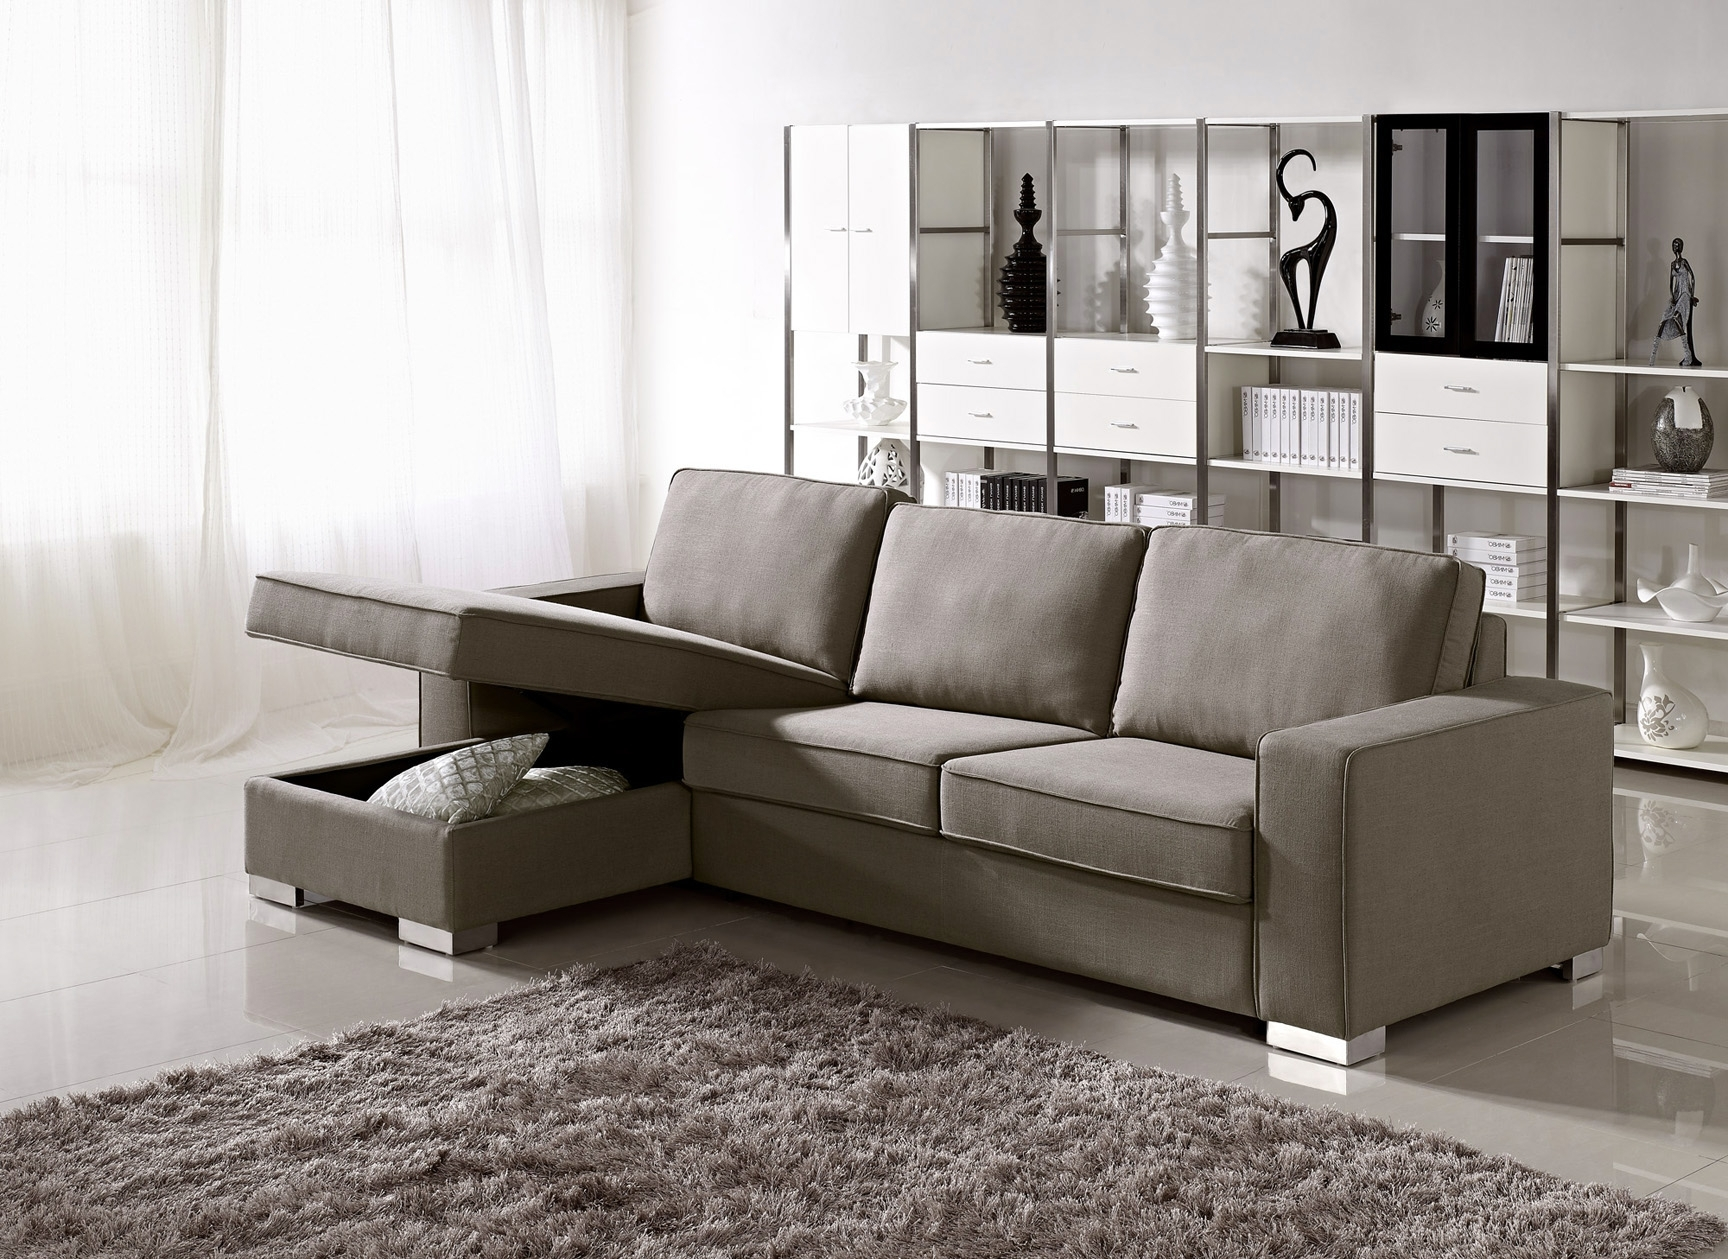 Well Liked Greenville Nc Sectional Sofas Within Furniture : Most Comfortable Stylish Couches For Living Room Ideas (View 4 of 20)